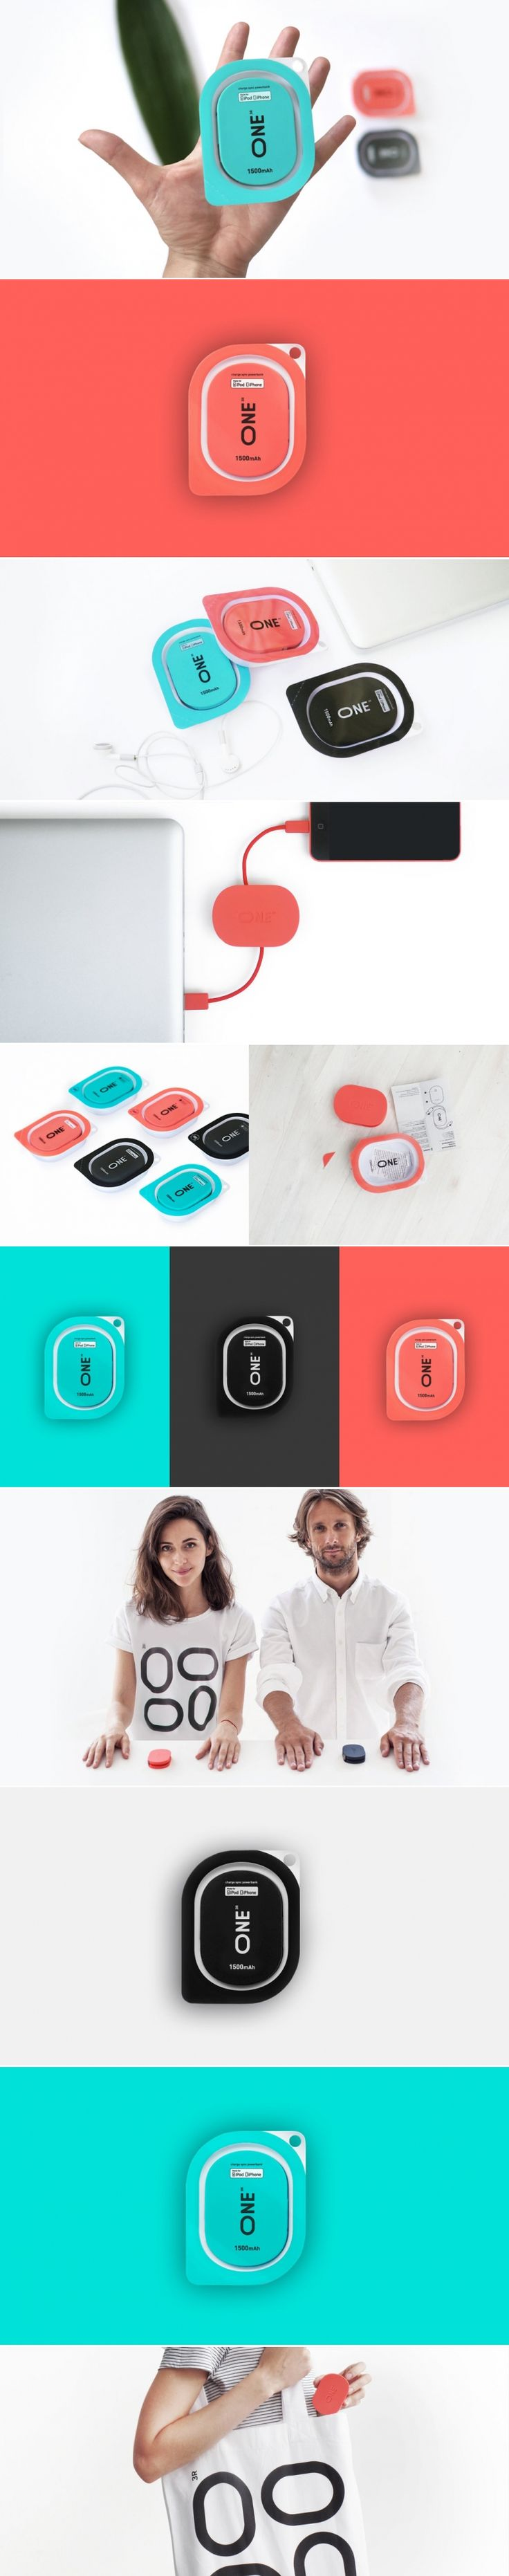 One iOS Lightning Charger — The Dieline - Branding & Packaging Design